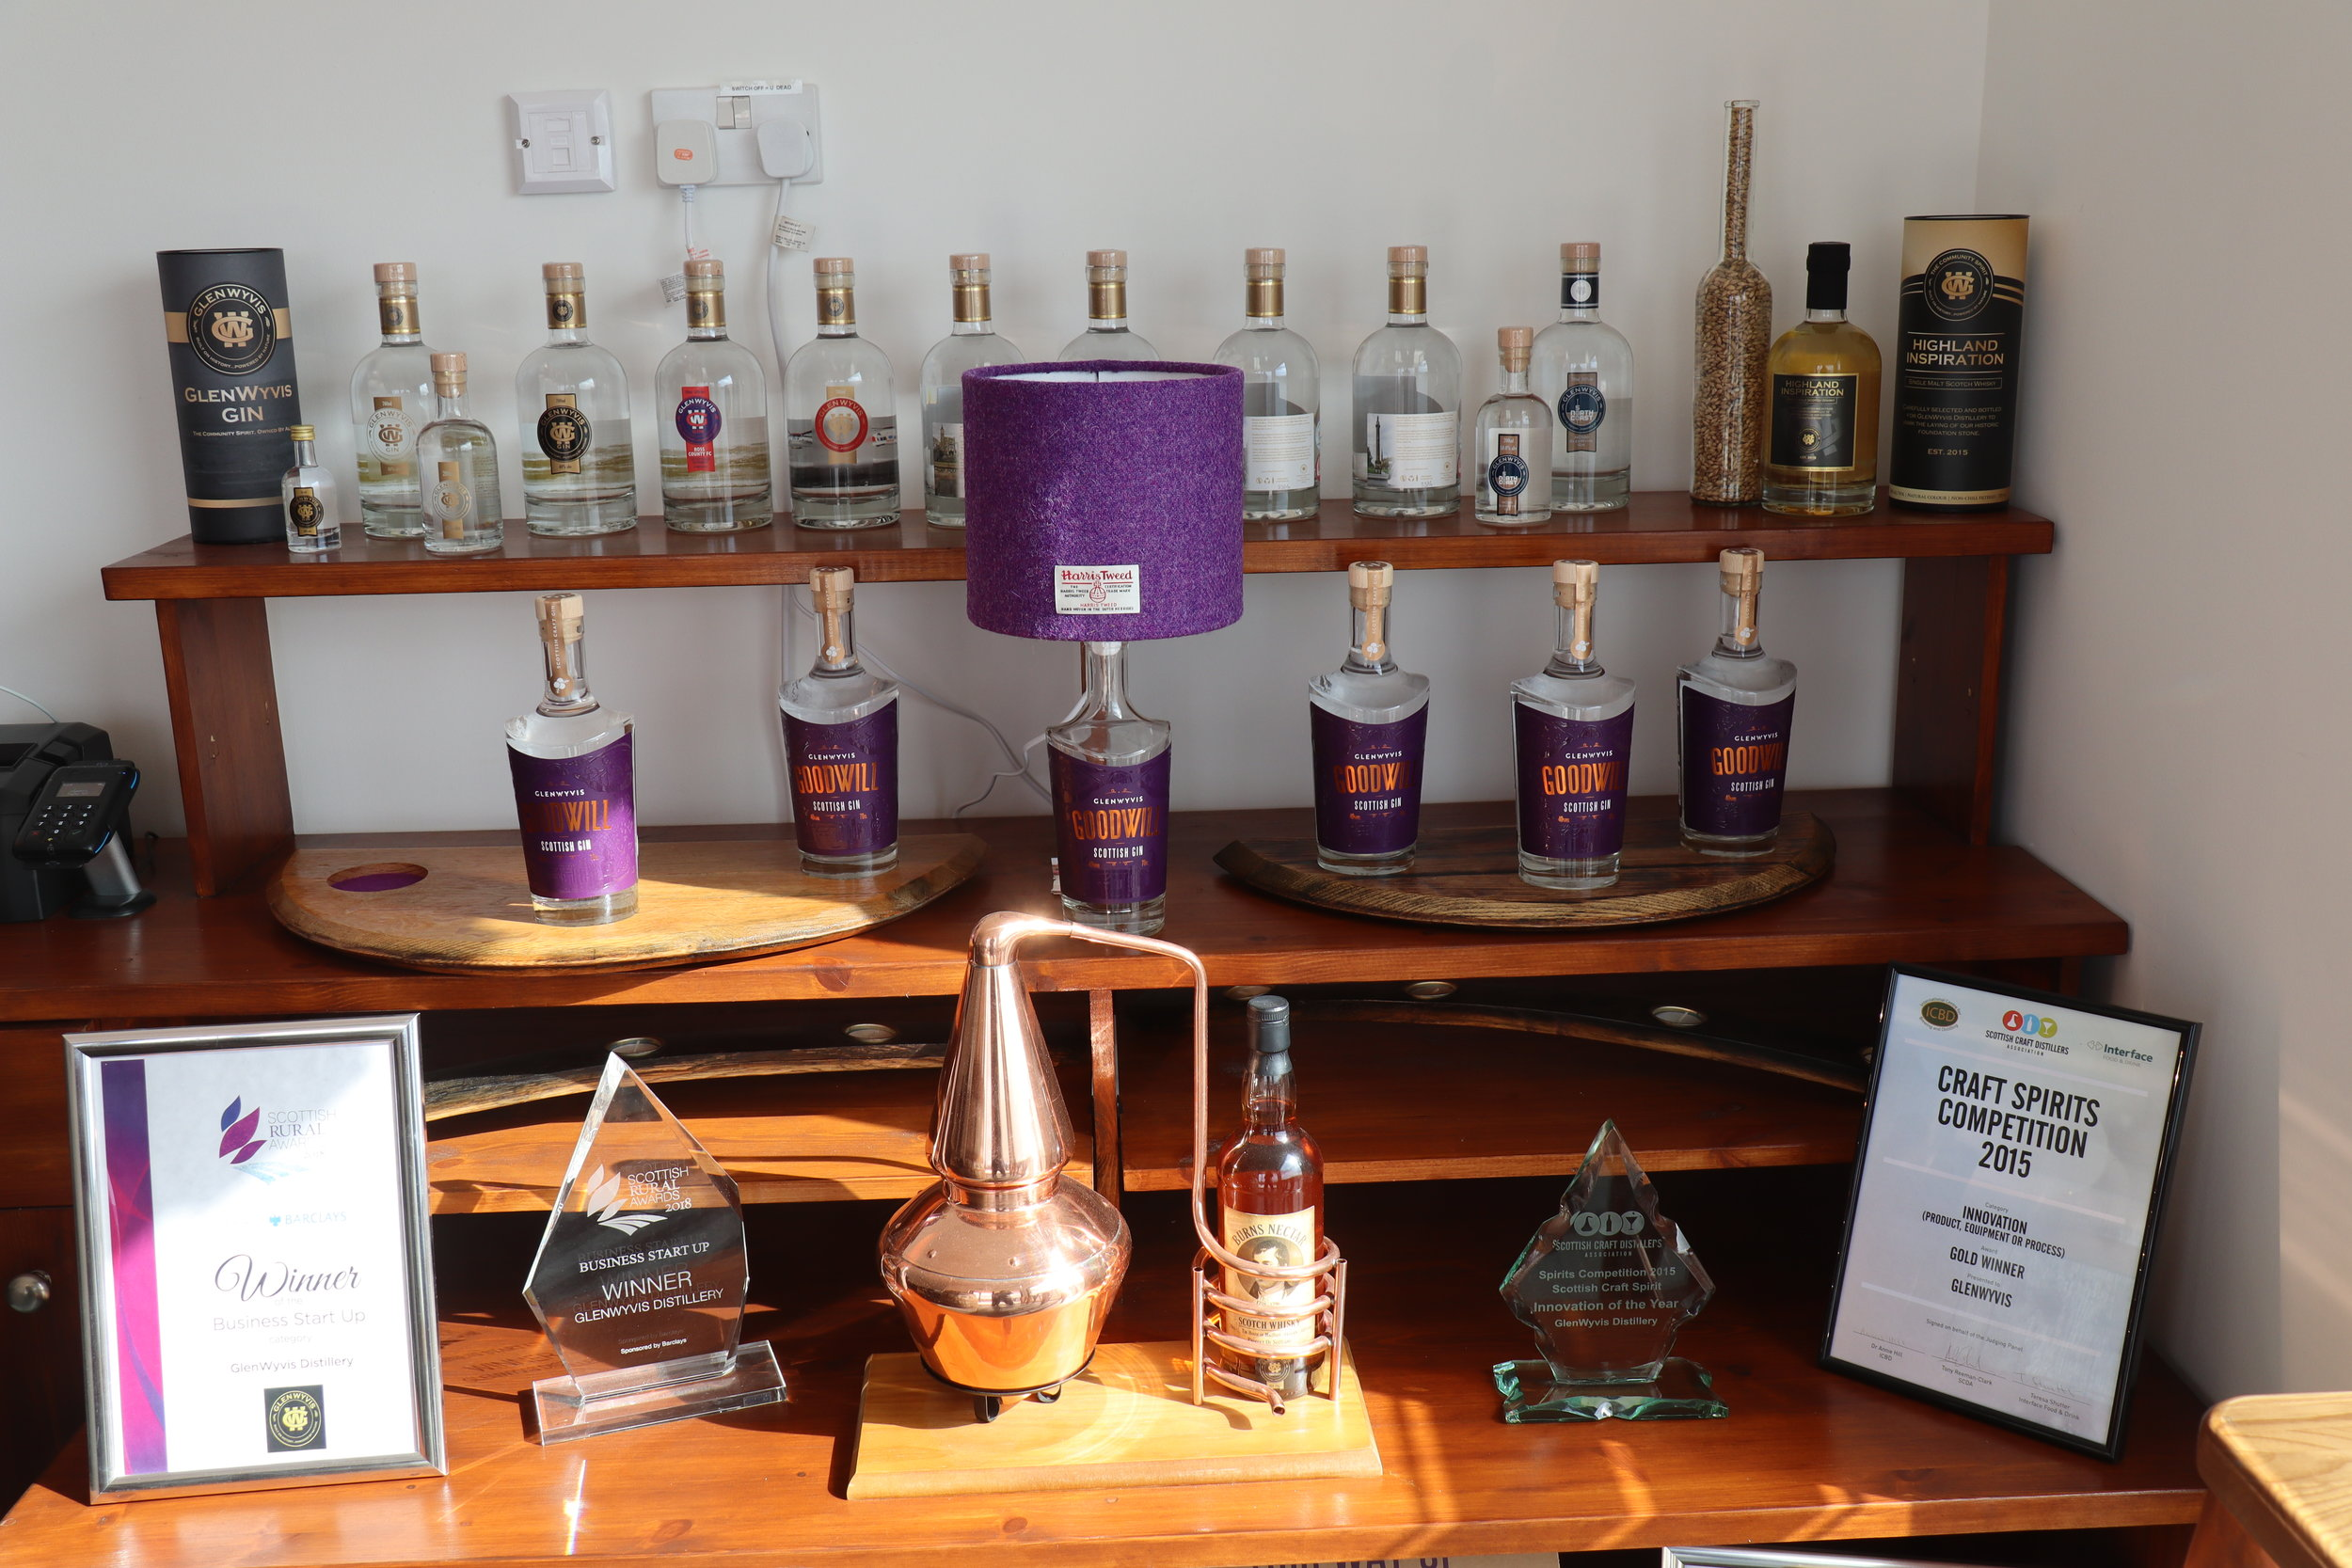 This wee display of awards and product, old and new, is what presently amounts to a visitor center at GlenWyvis.